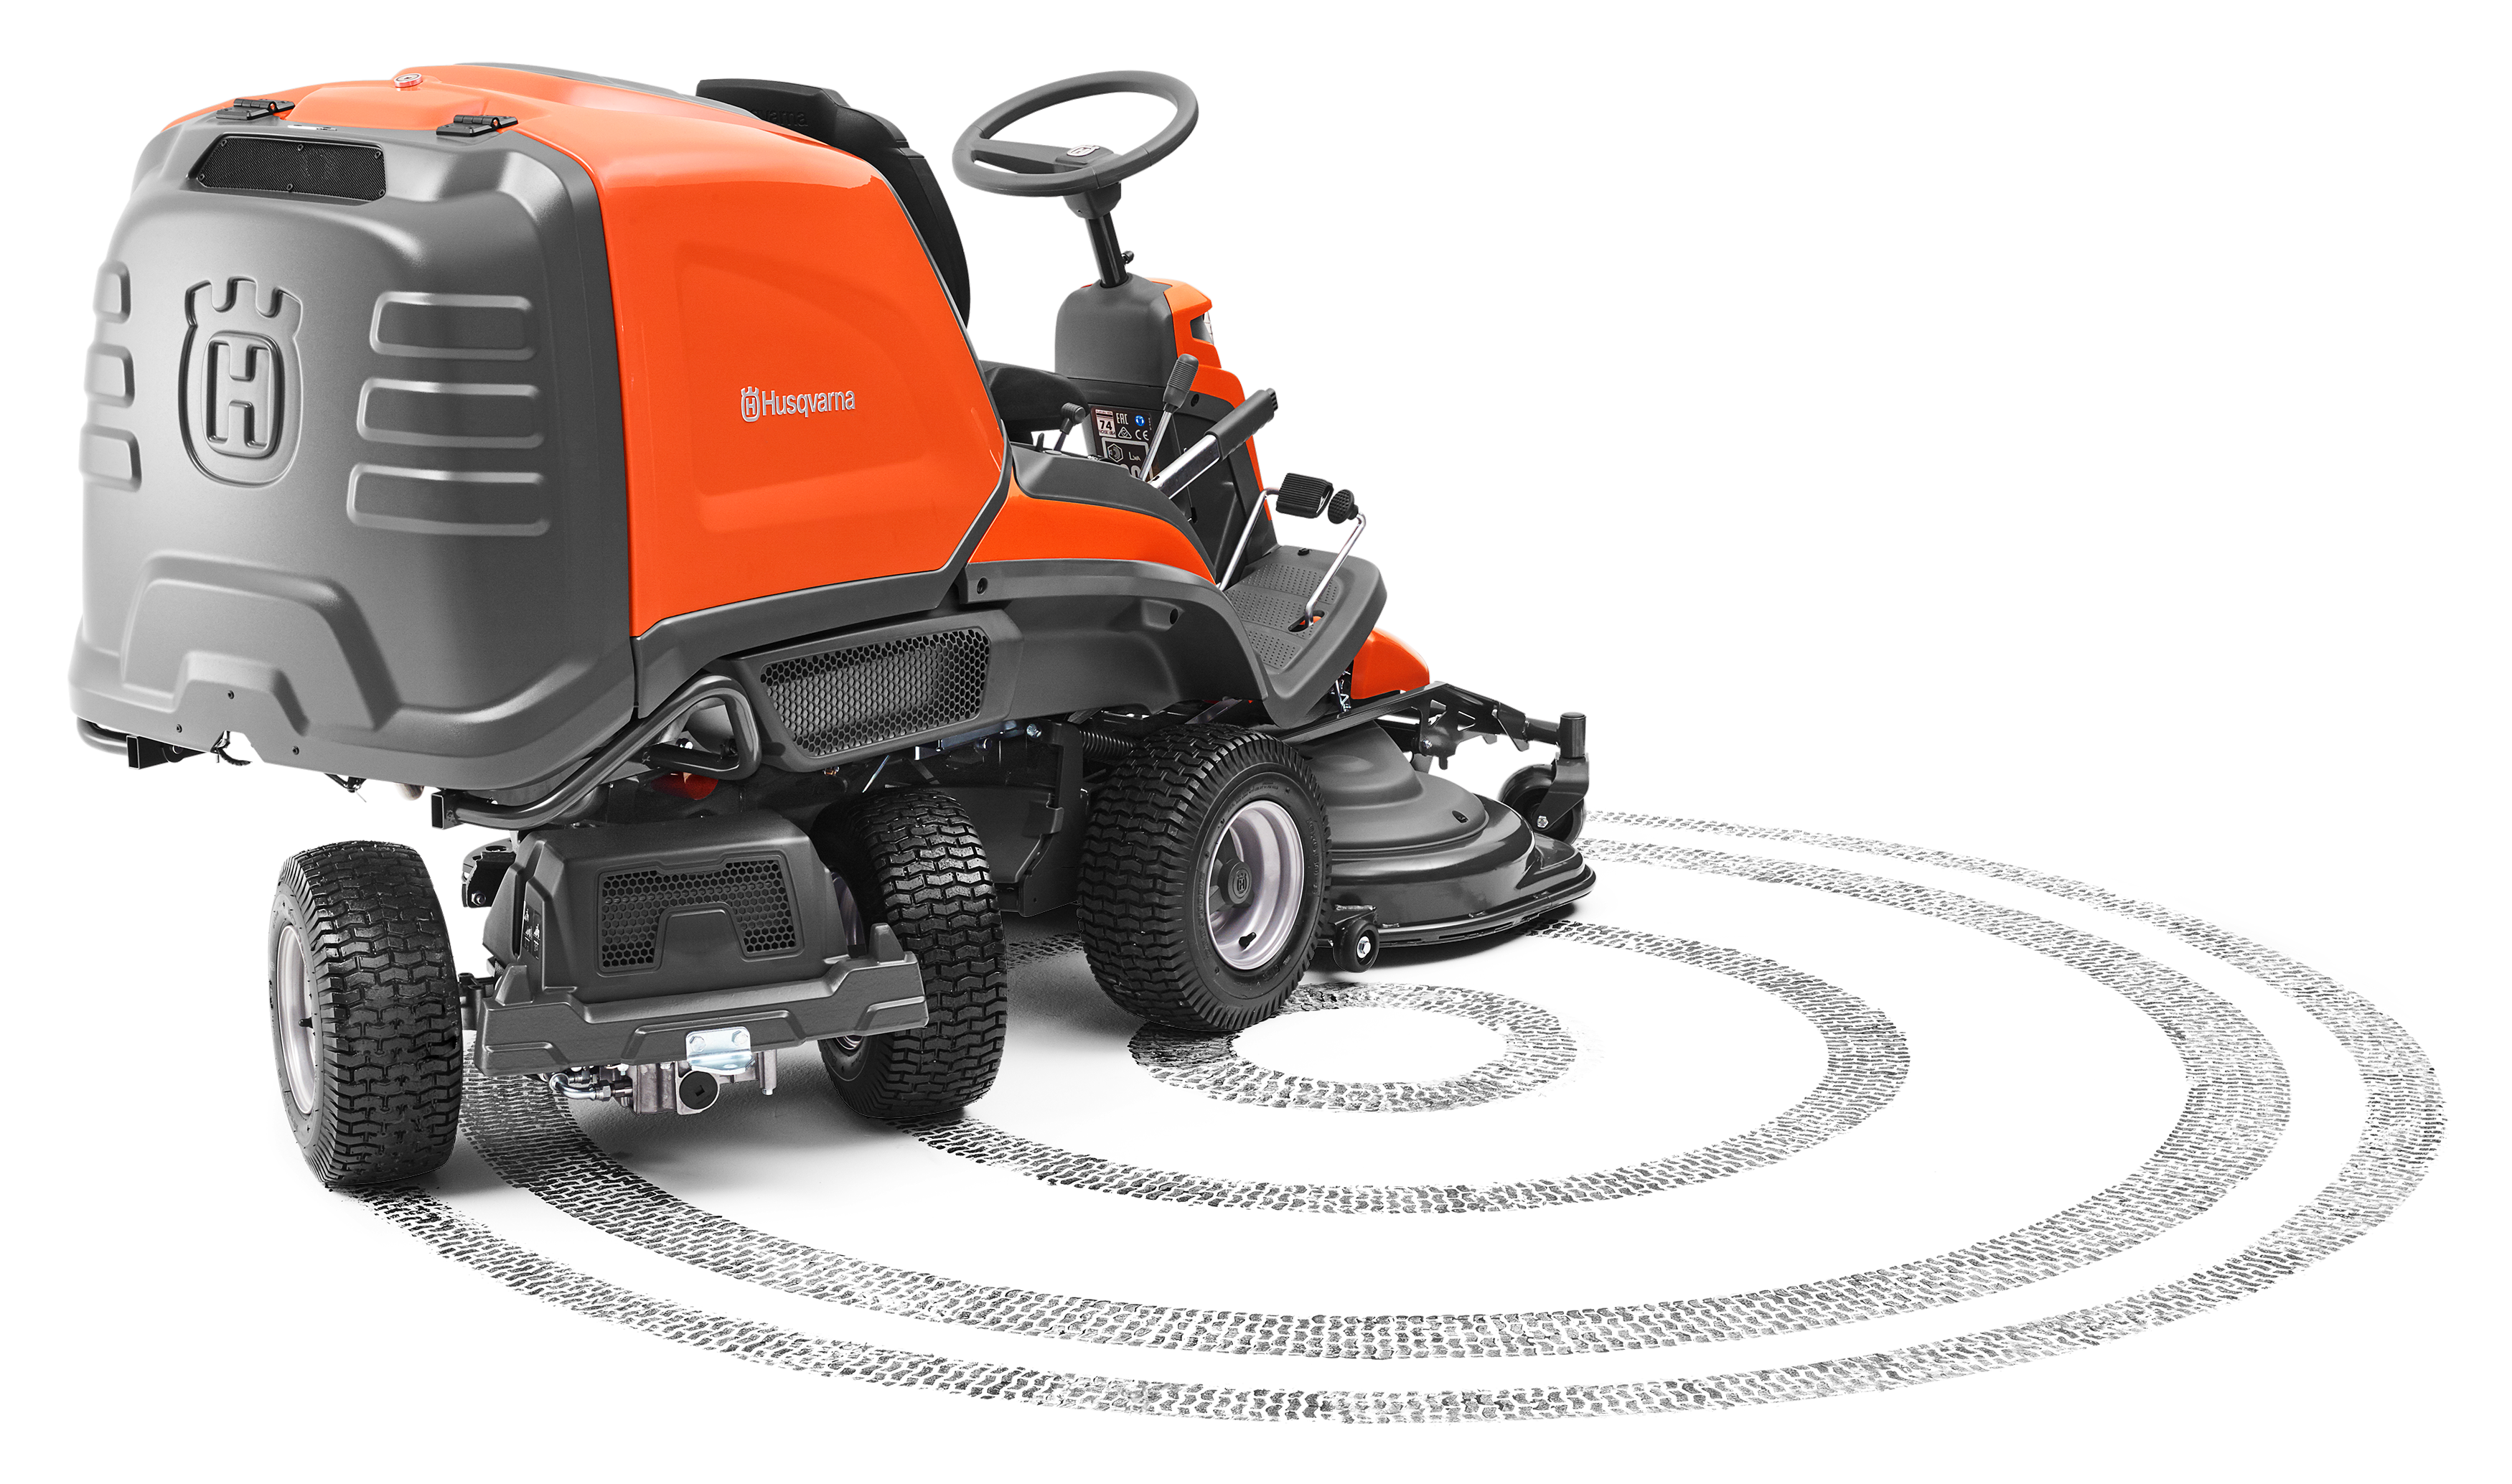 Husqvarna's new our front collector mower